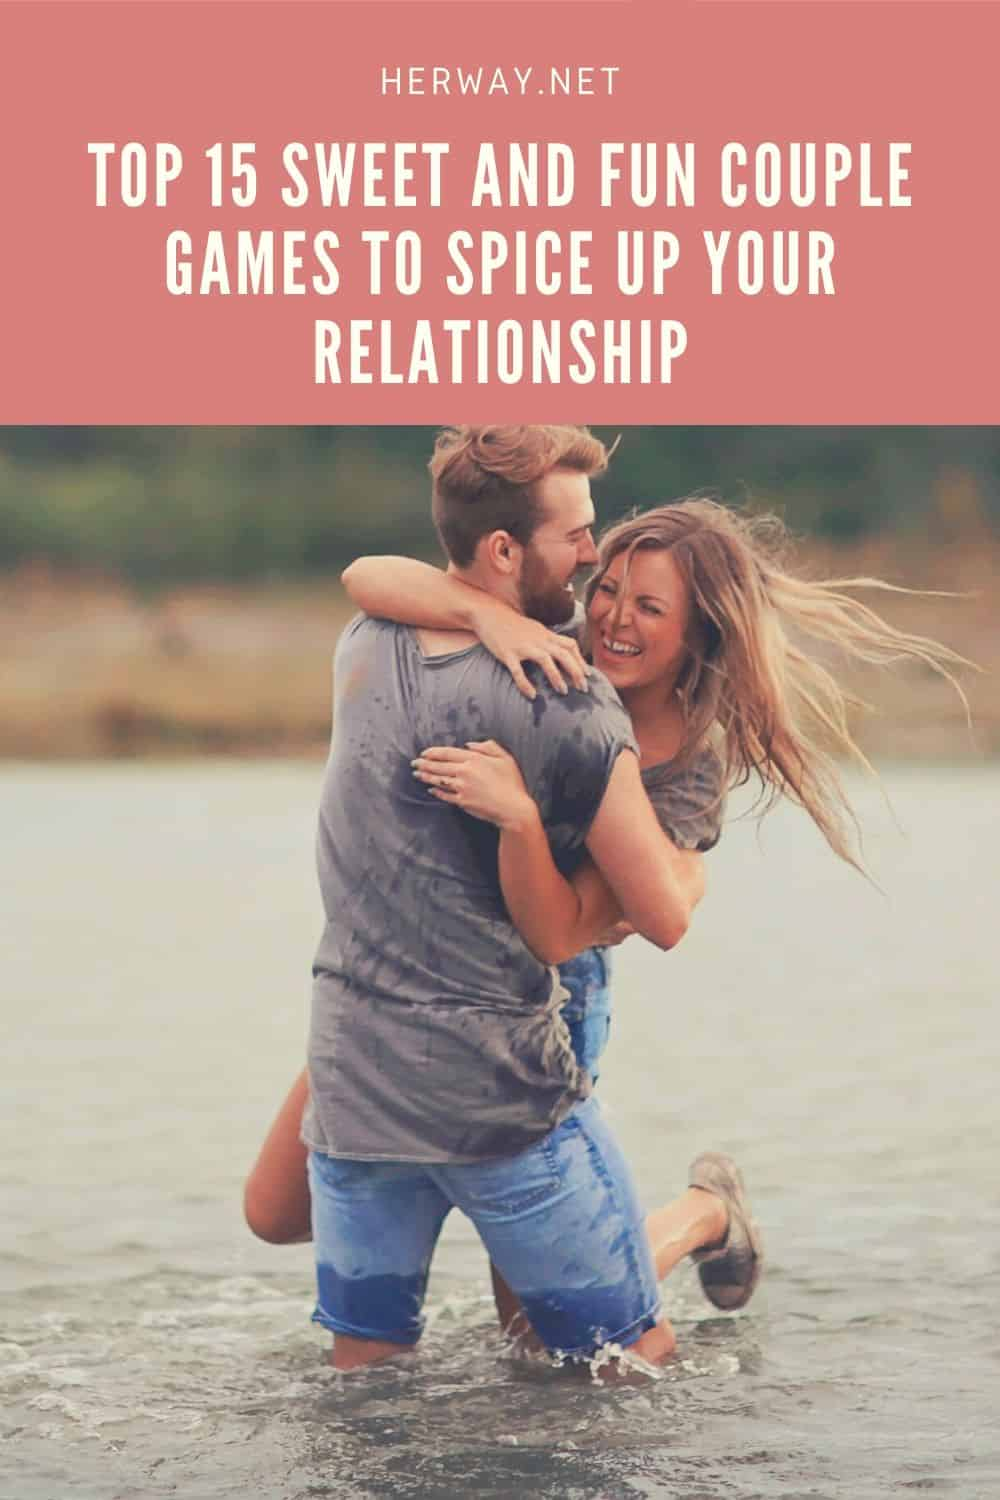 Top 15 Sweet And Fun Couple Games To Spice Up Your Relationship Pinterest